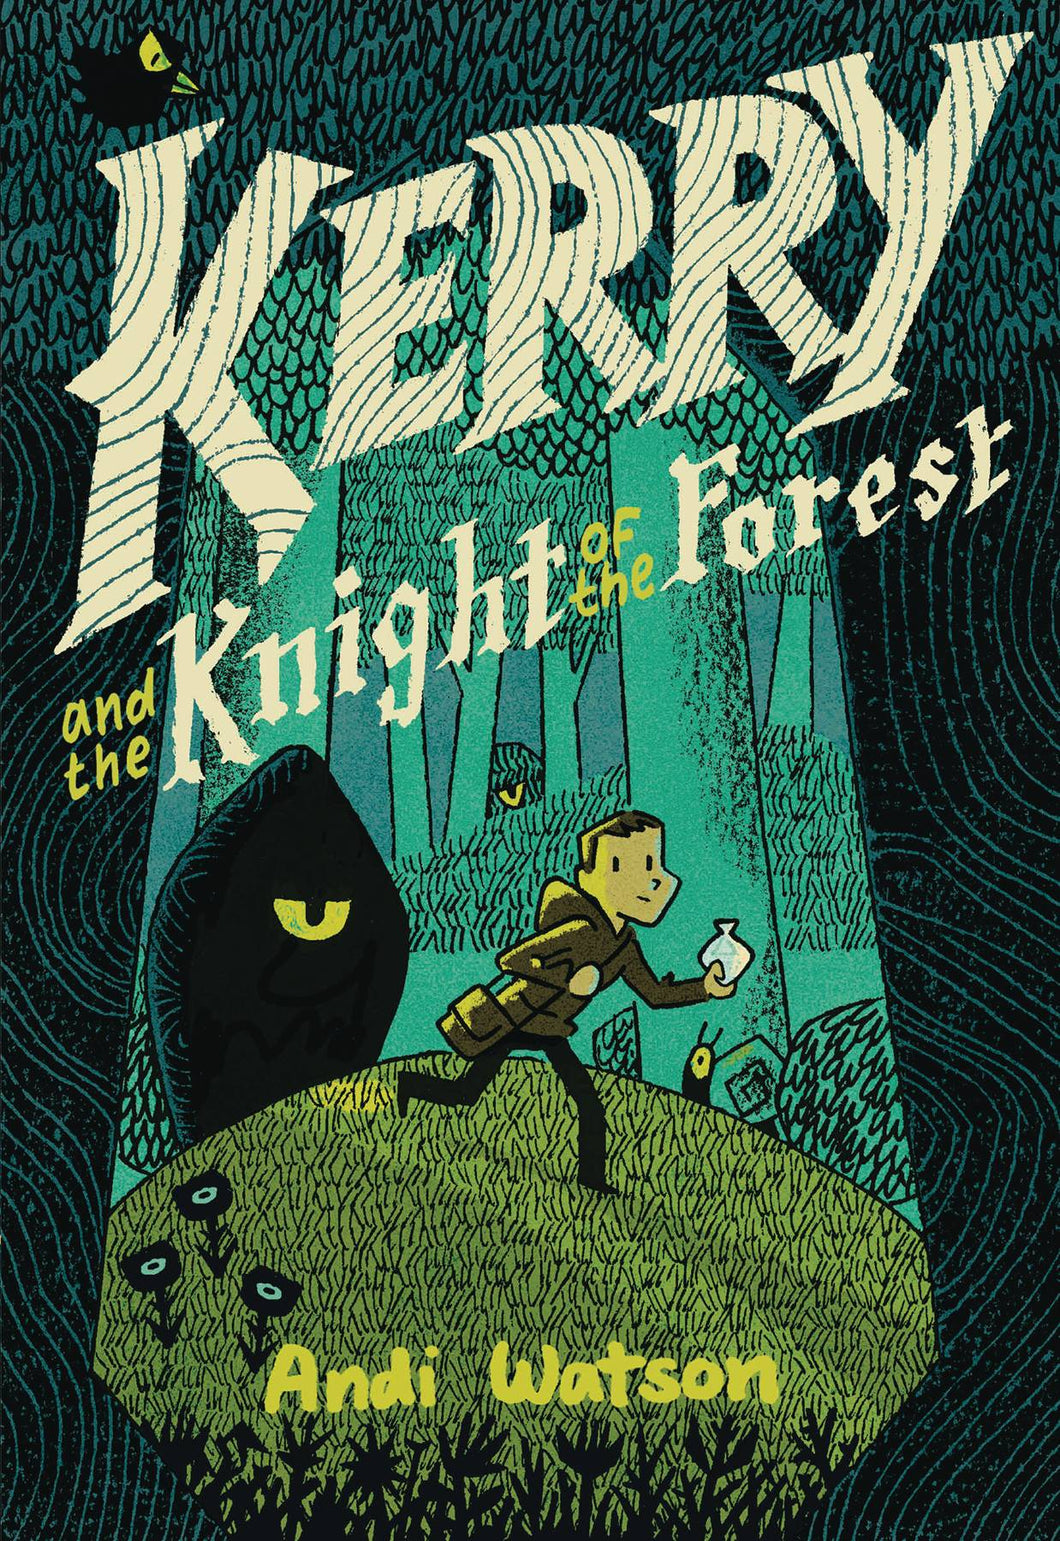 KERRY AND THE KNIGHT OF THE FOREST GN